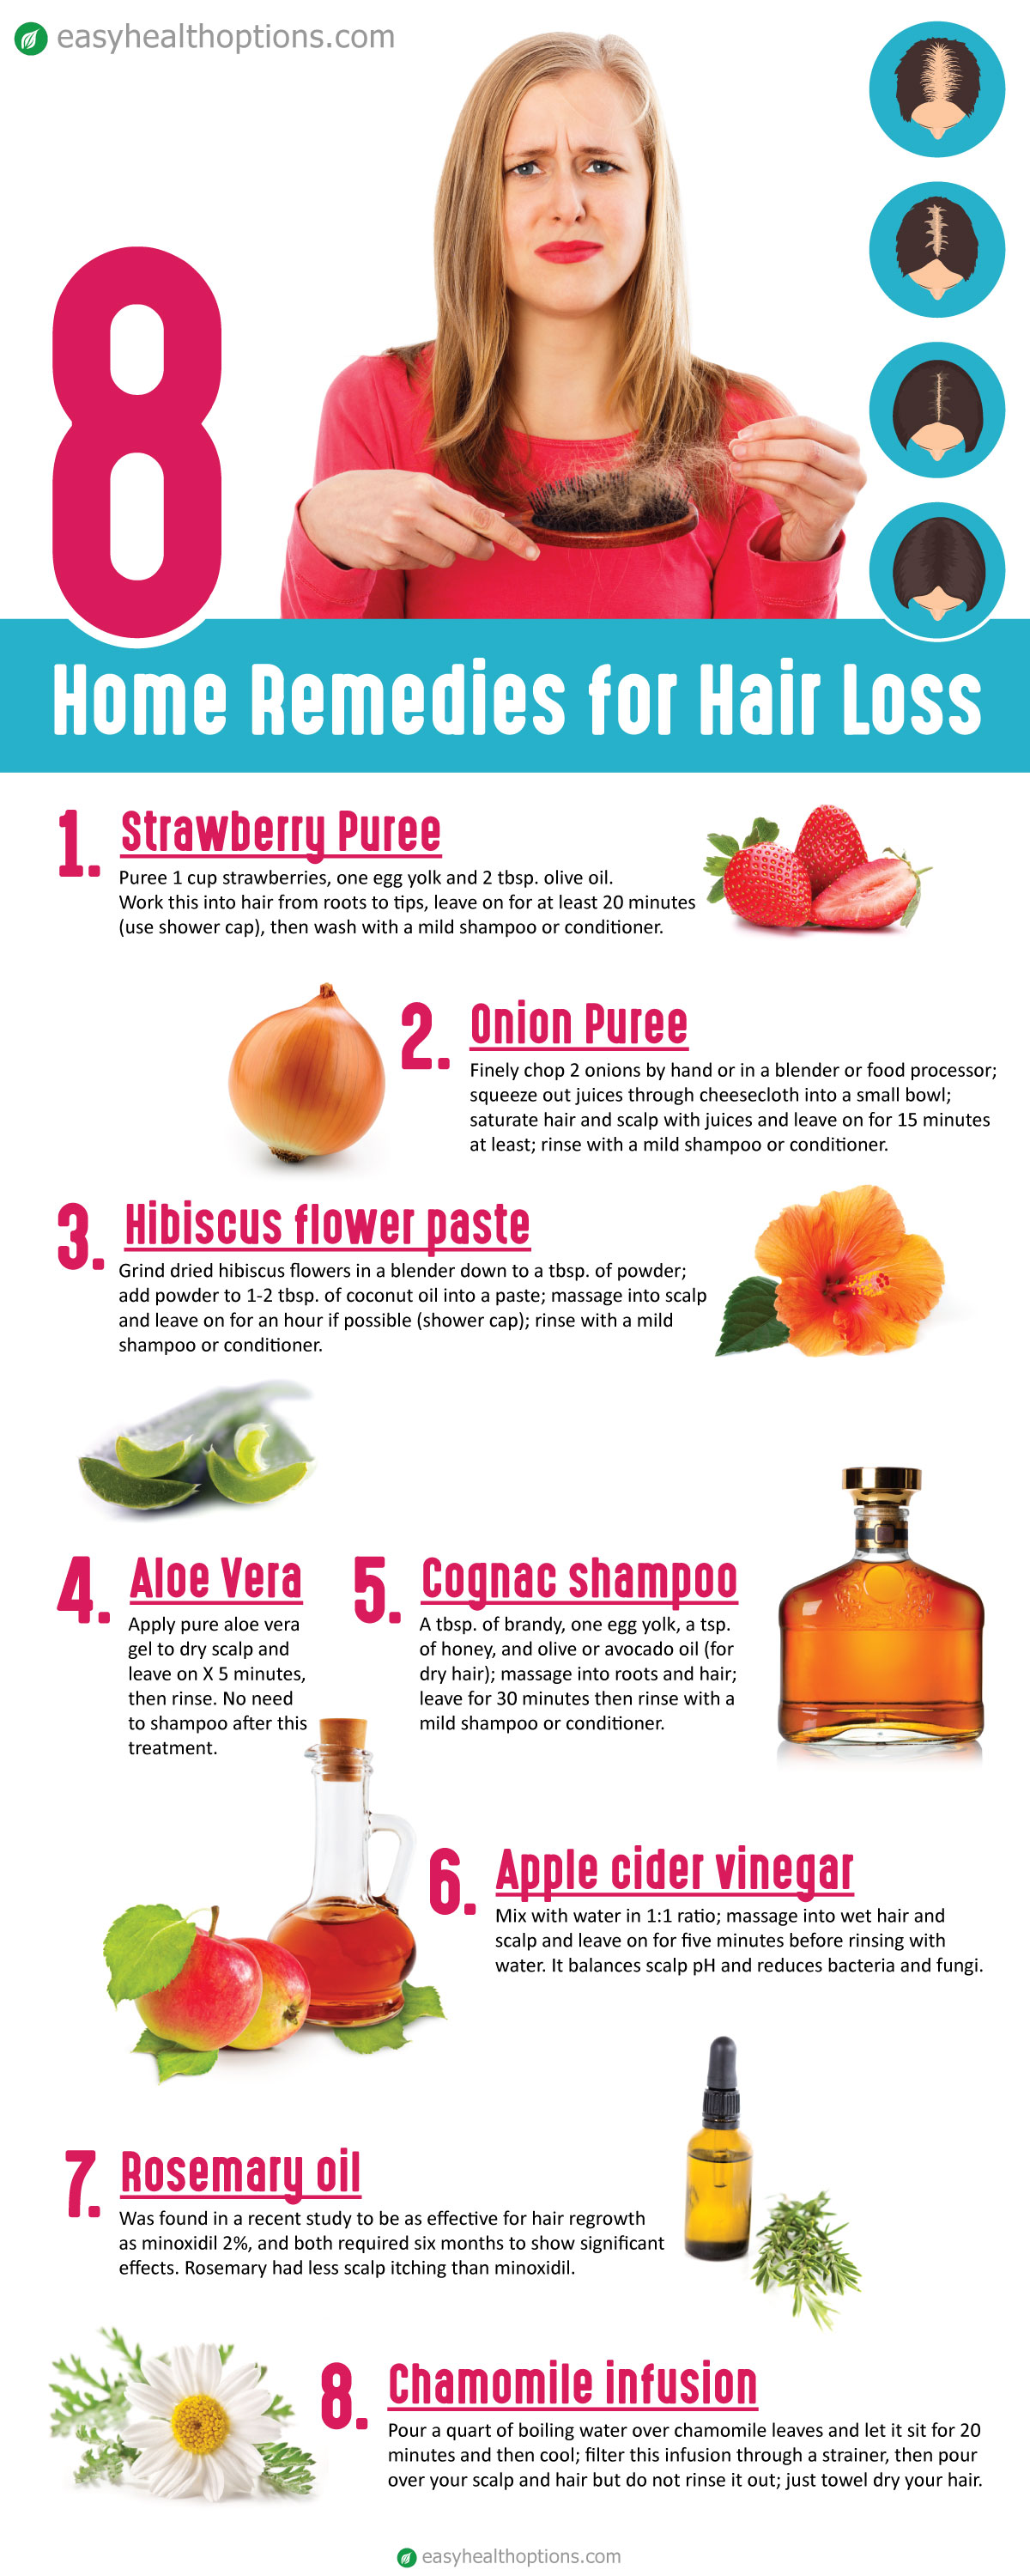 At home remedies for hair loss